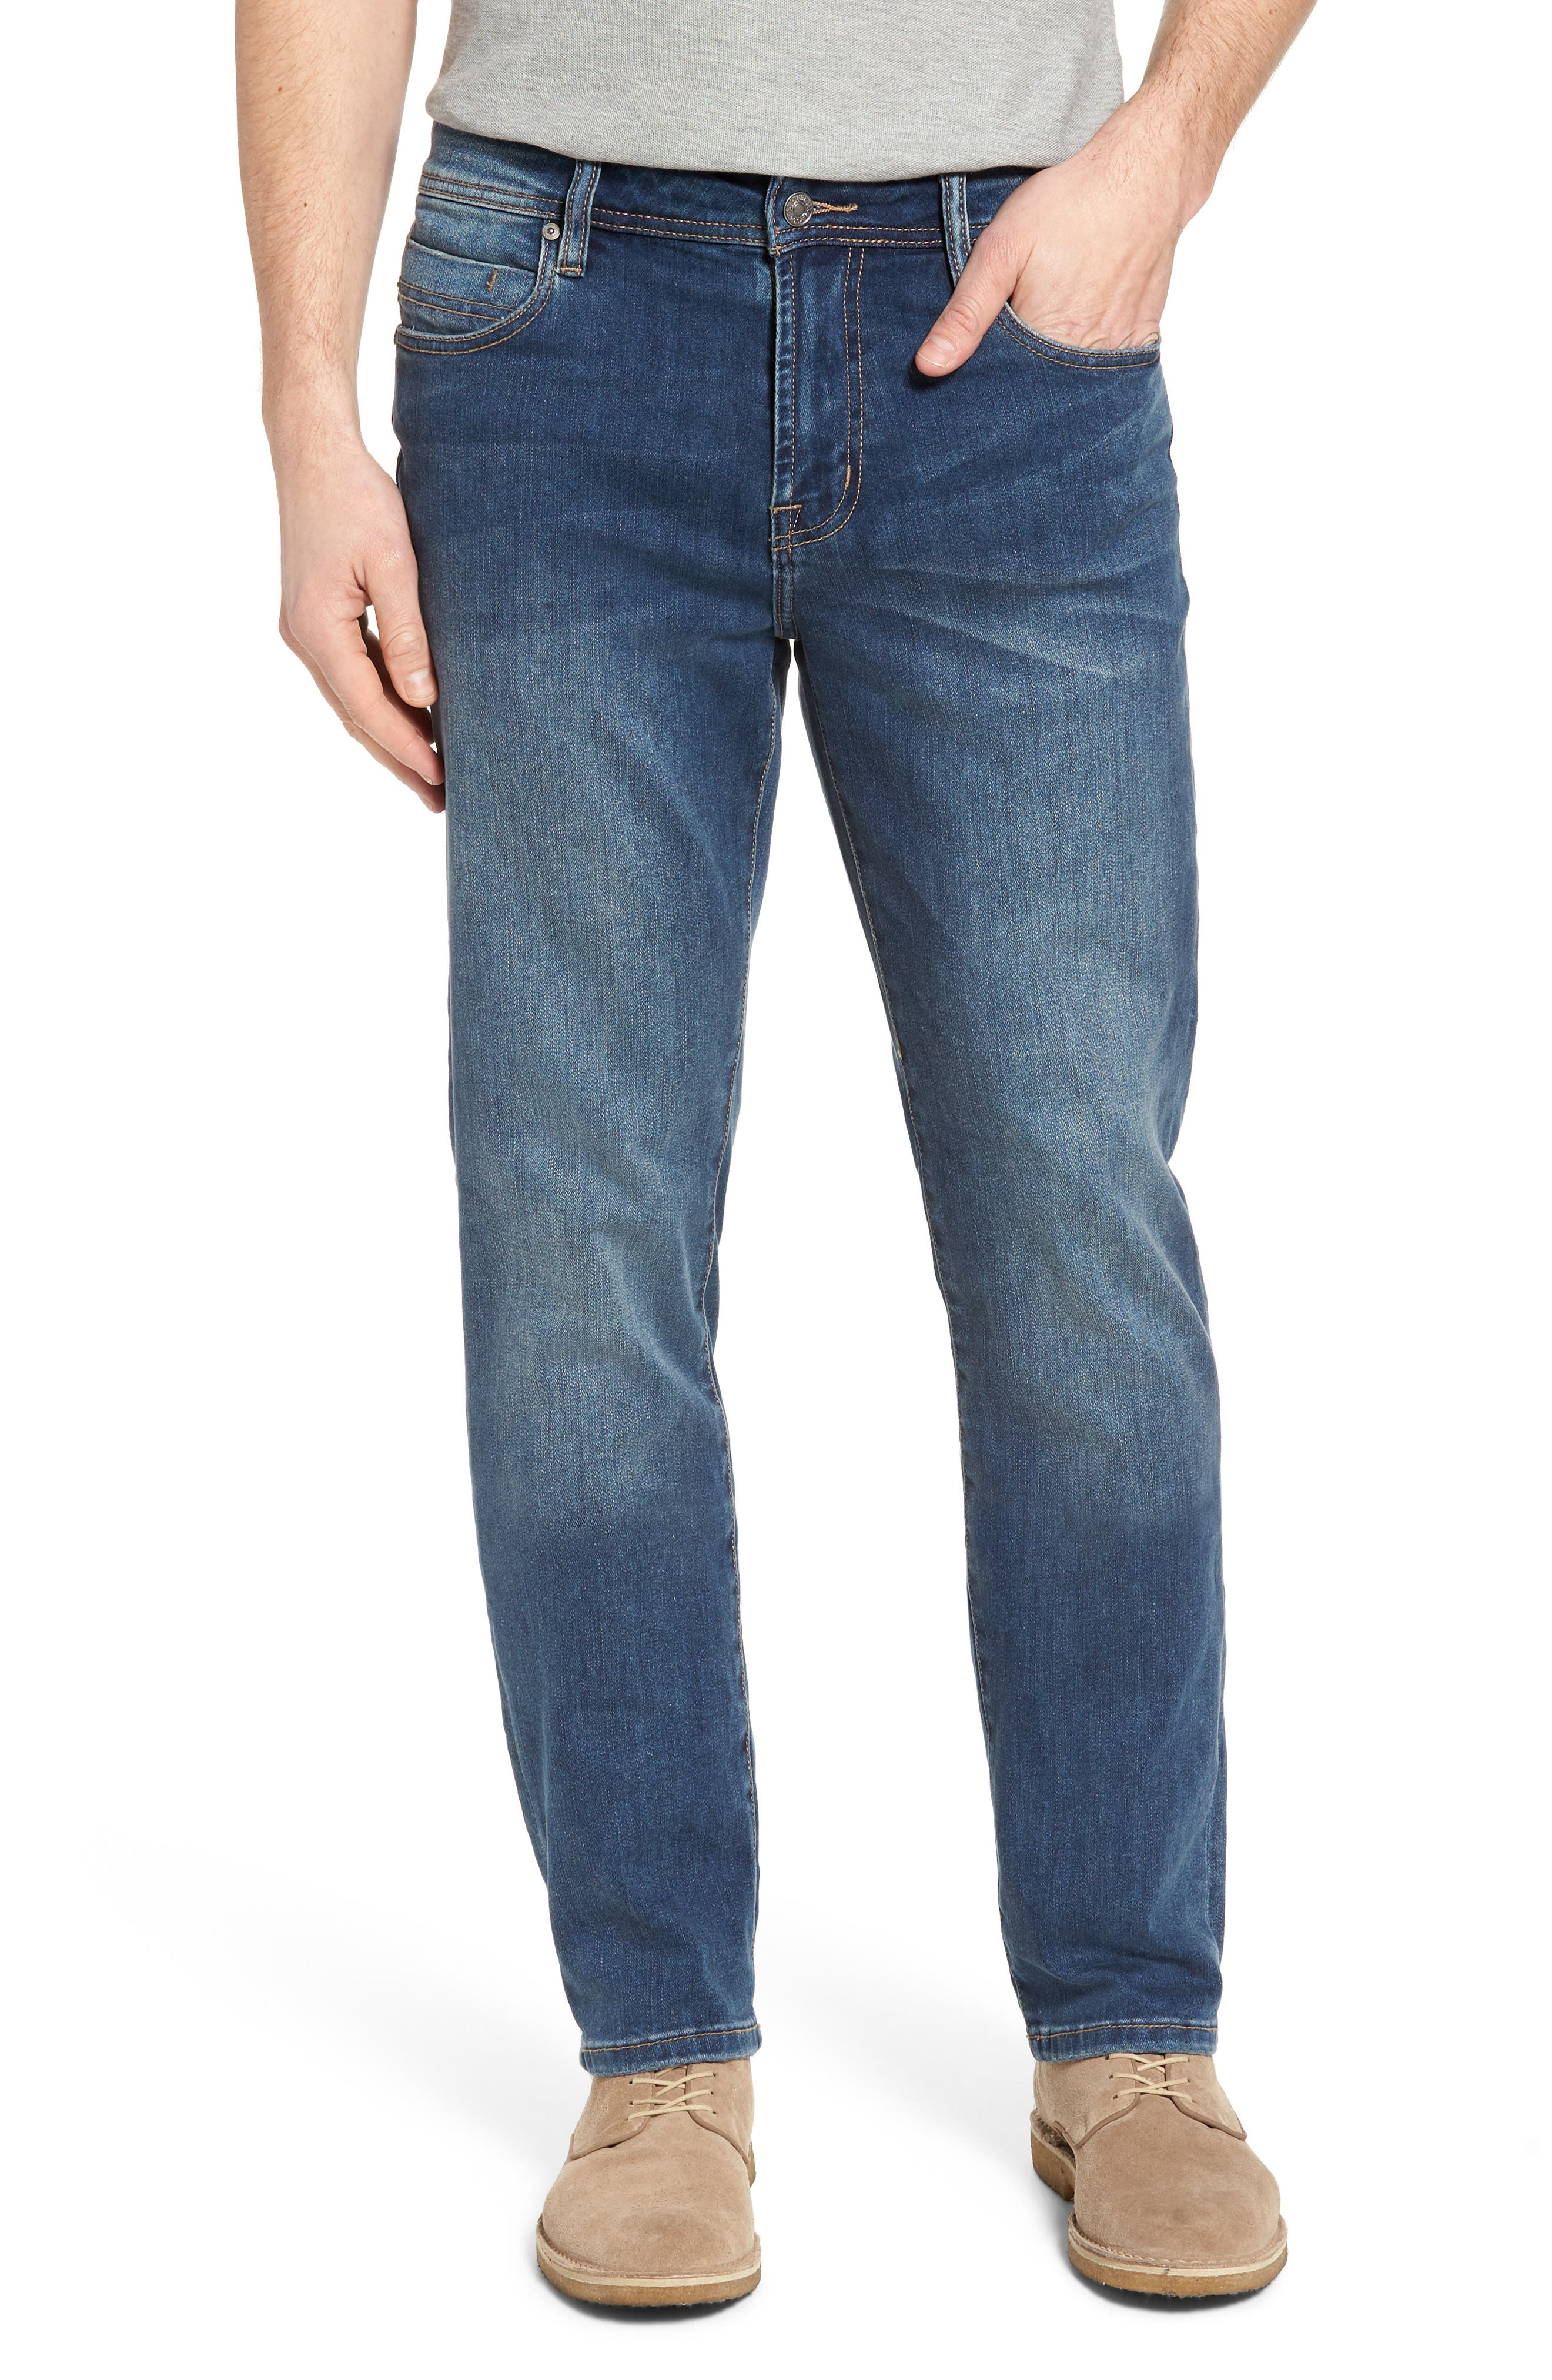 Jeans Co. Regent Relaxed Fit Jeans,                         Main,                         color, Chatsworth